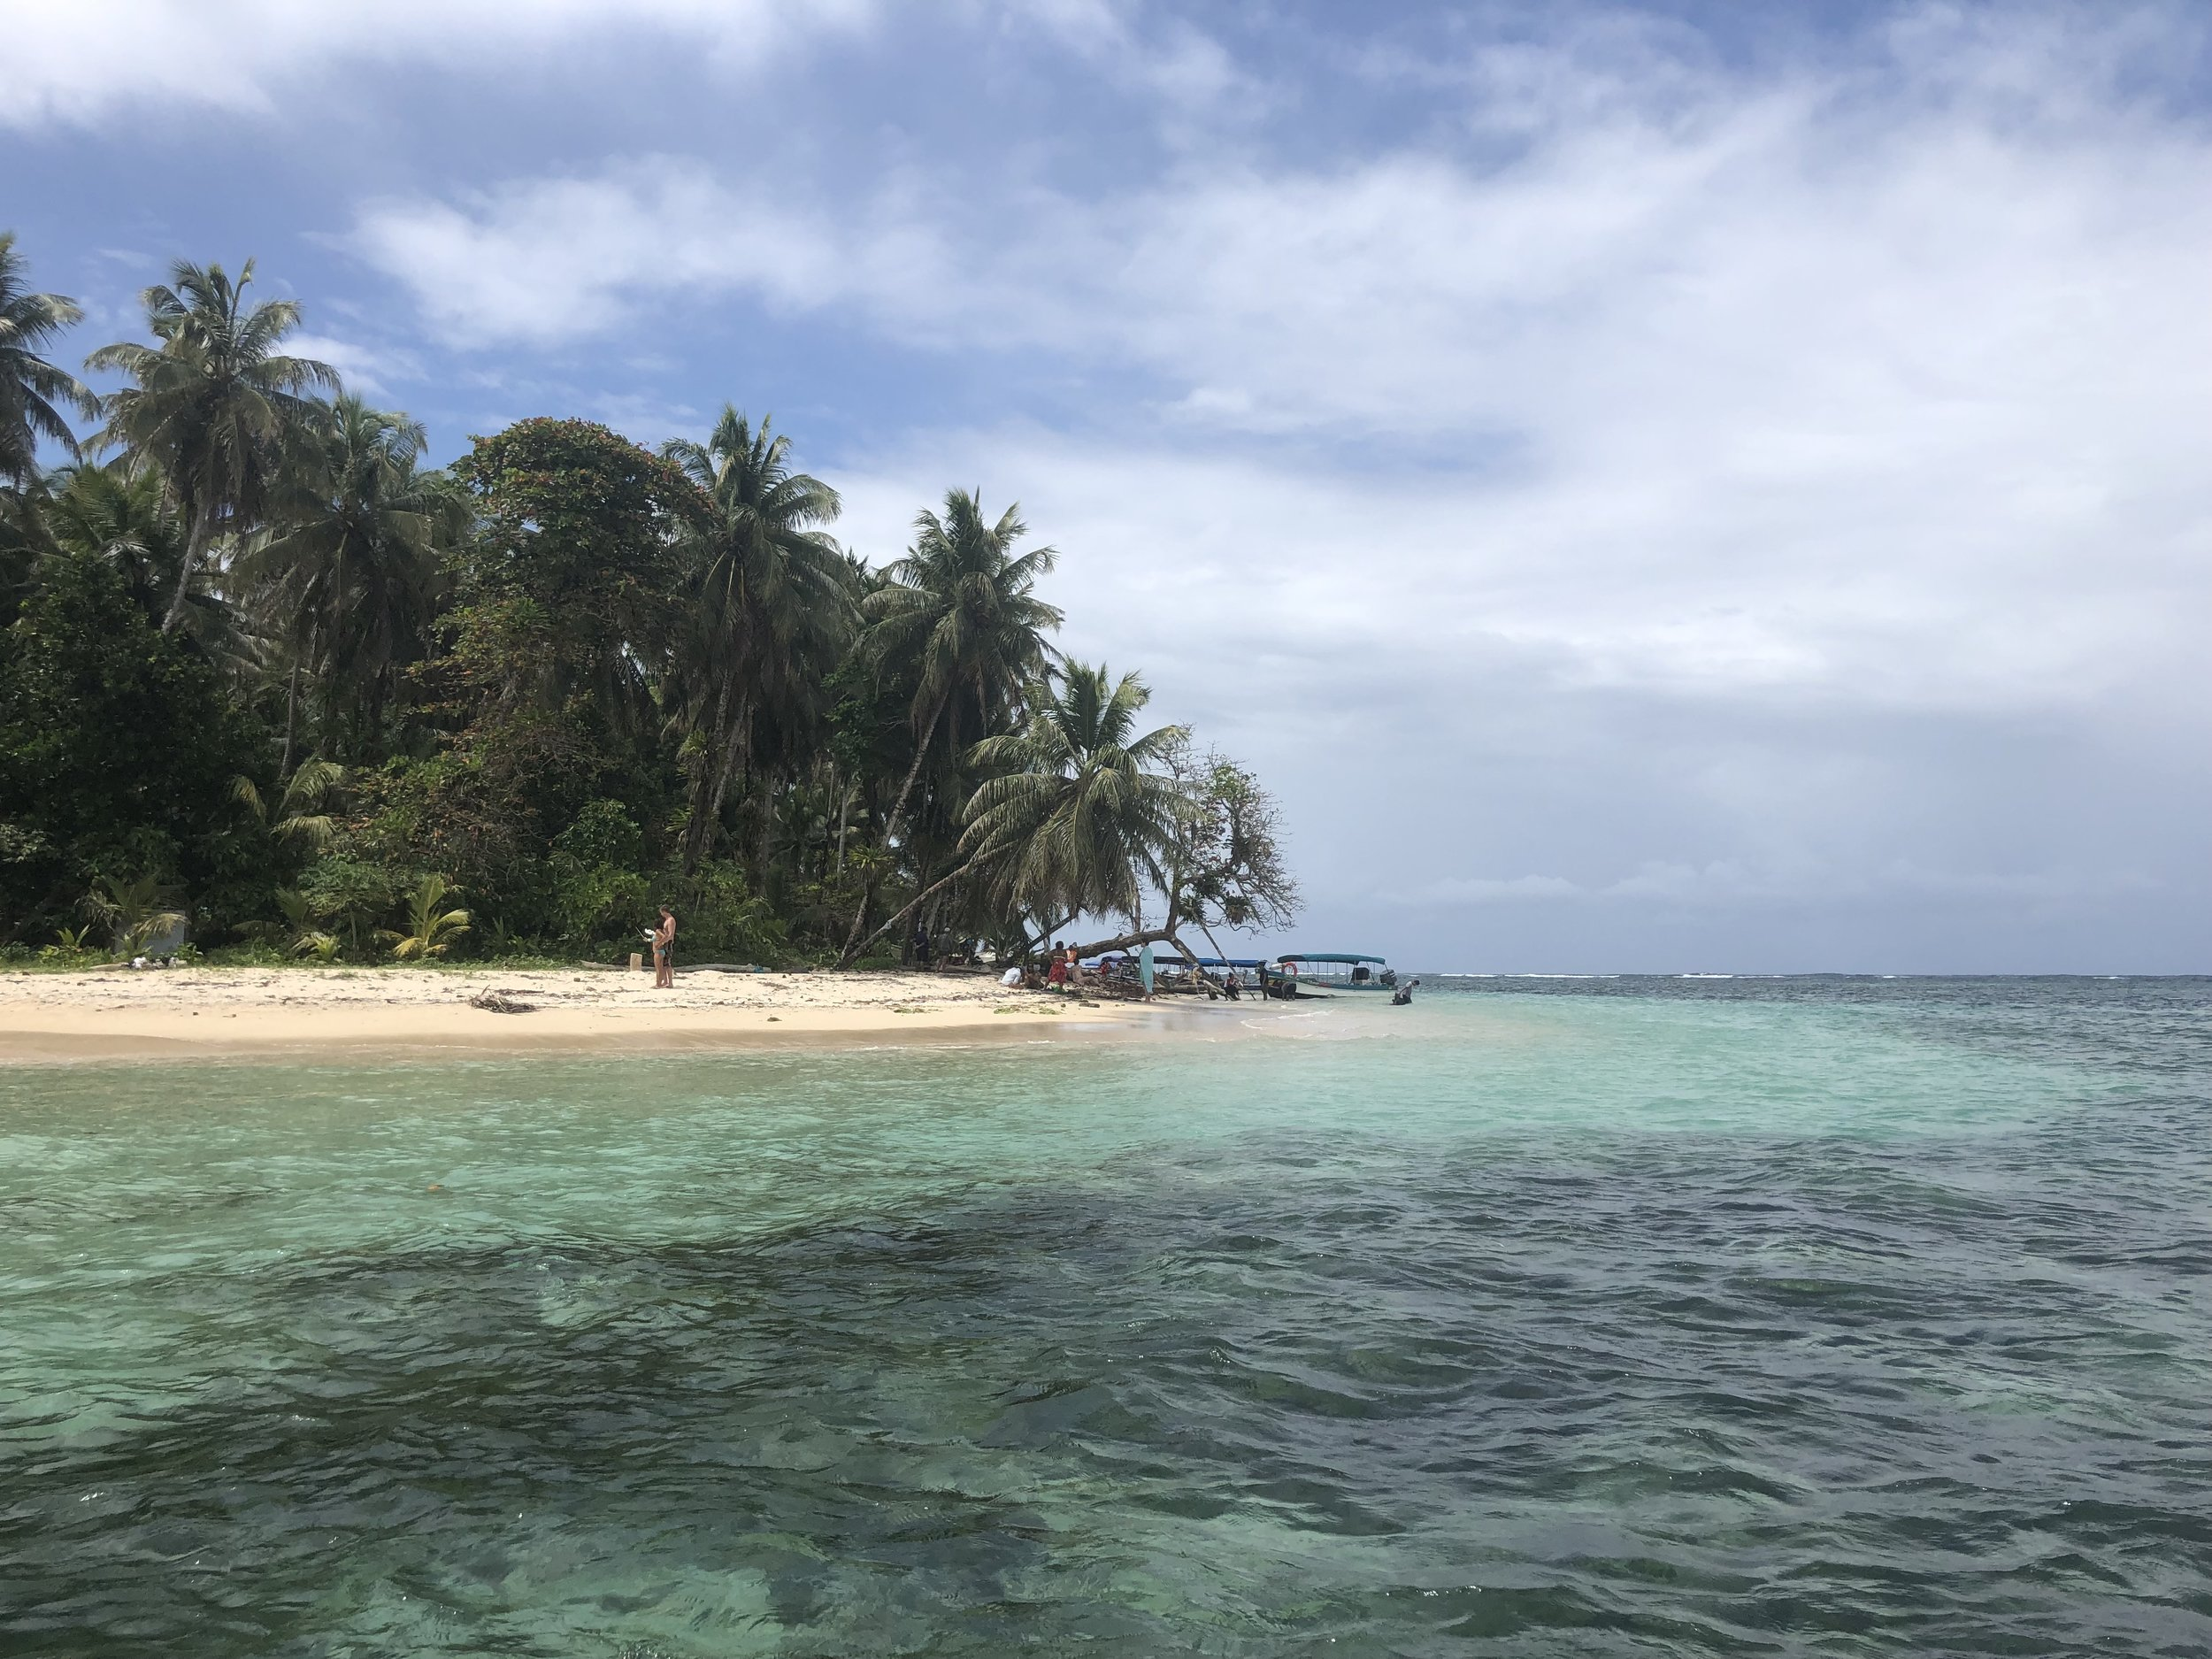 Isla Zapatillas, a protected, uninhabited island in the province of Bocas del Toro.